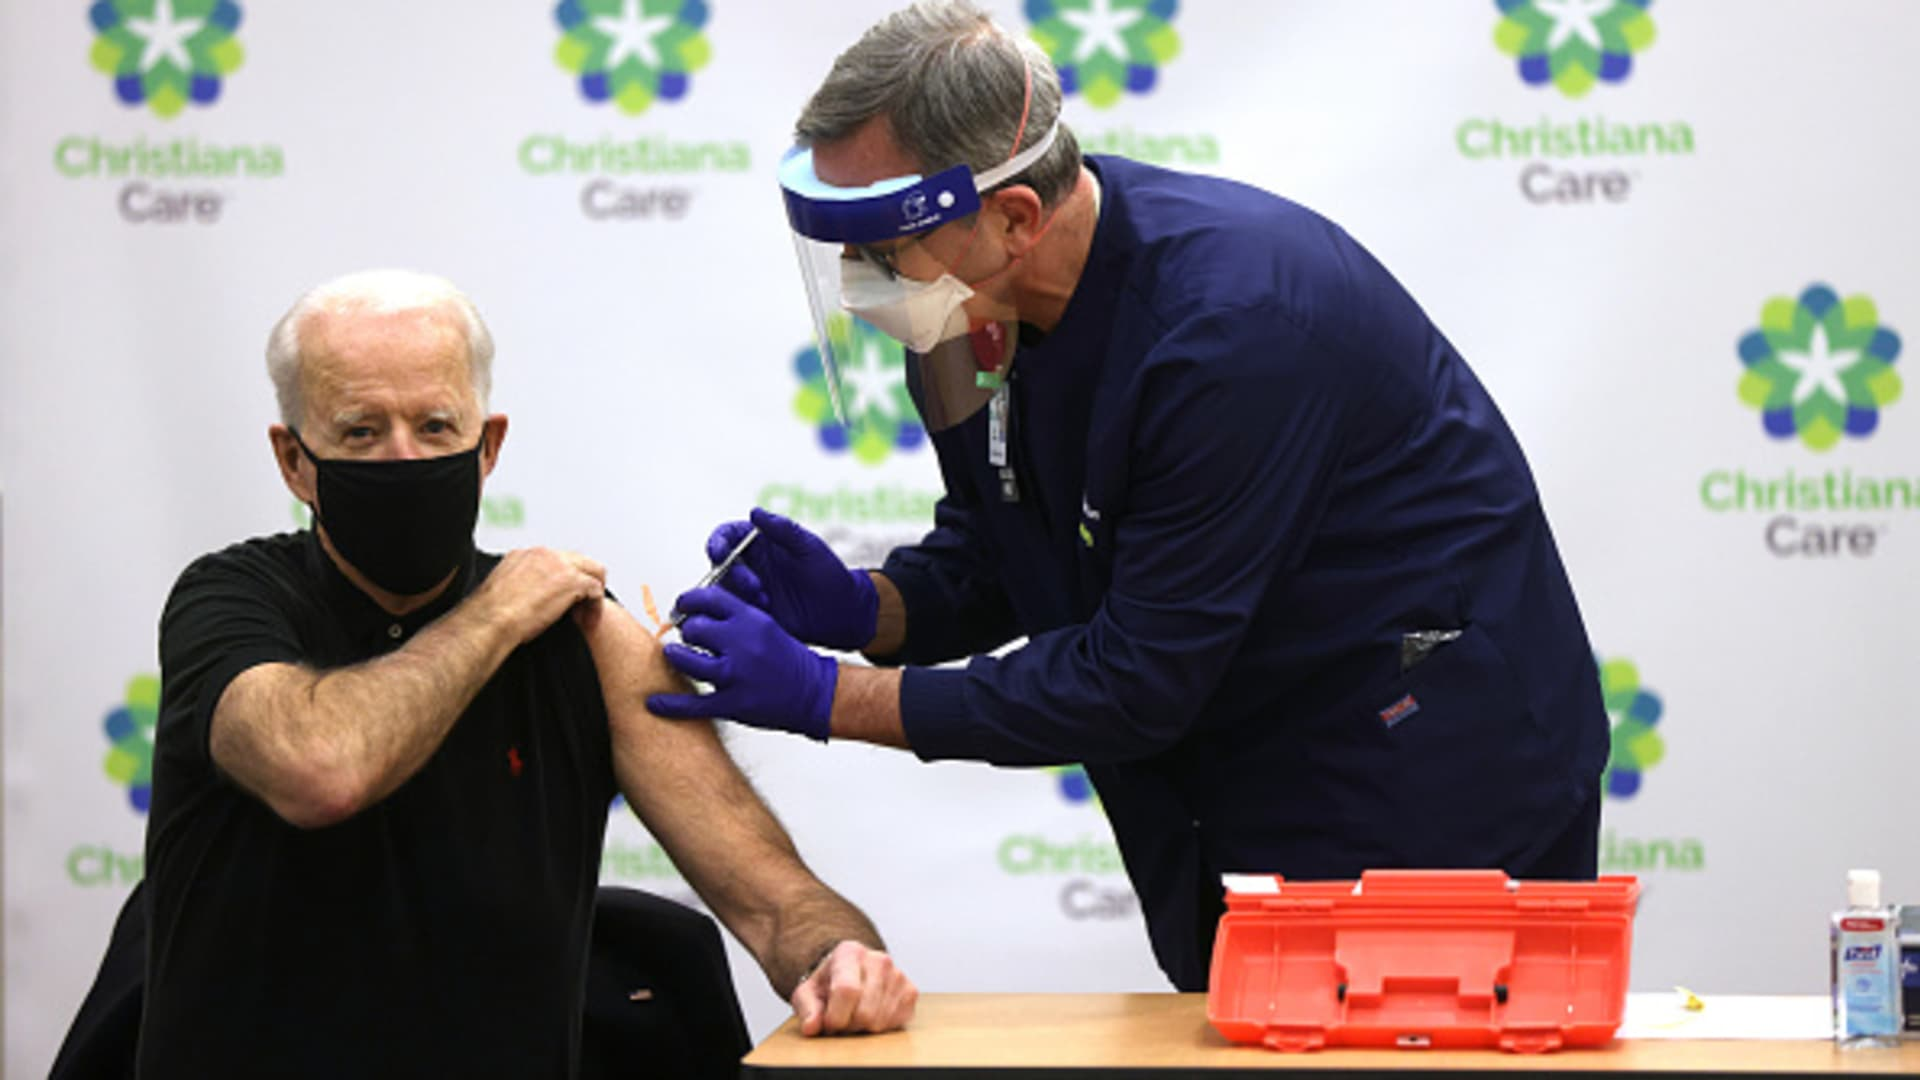 President-elect Joe Biden (L) receives the second dose of a COVID-19 Vaccination from Chief Nurse Executive Ric Cuming (R) at ChristianaCare Christiana Hospital on January 11, 2021 in Newark, Delaware.